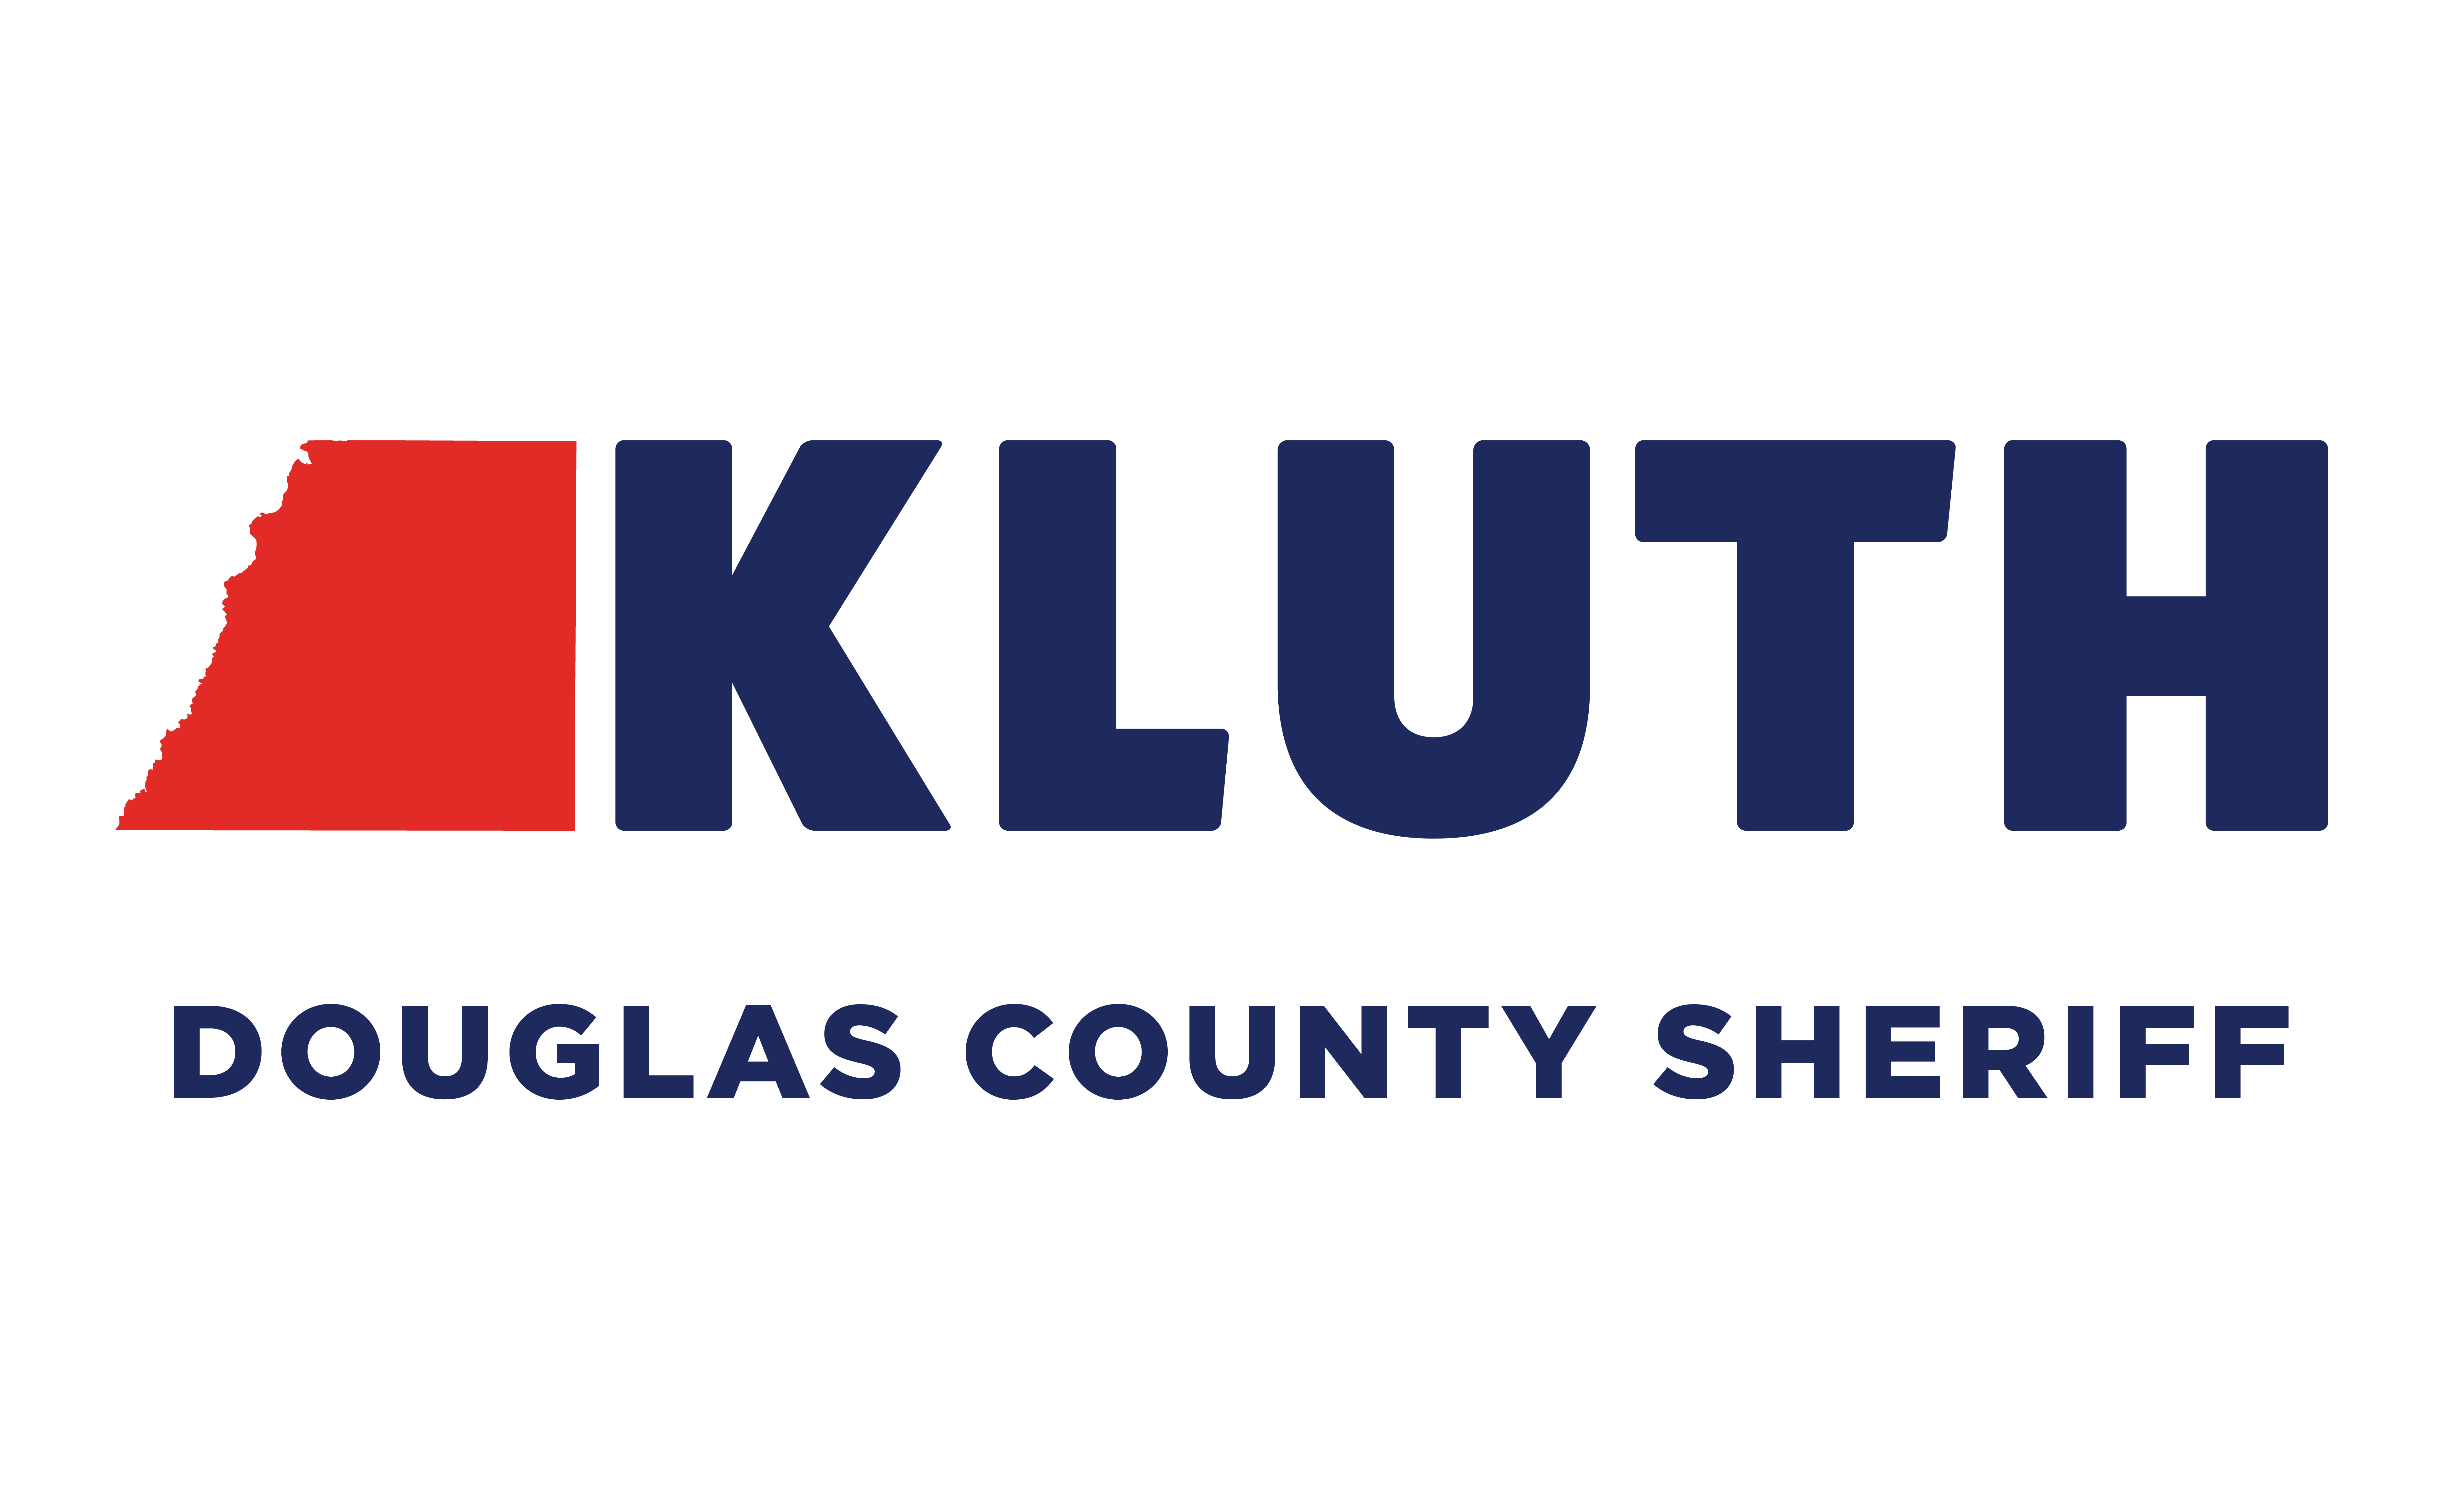 Kluth for sheriff